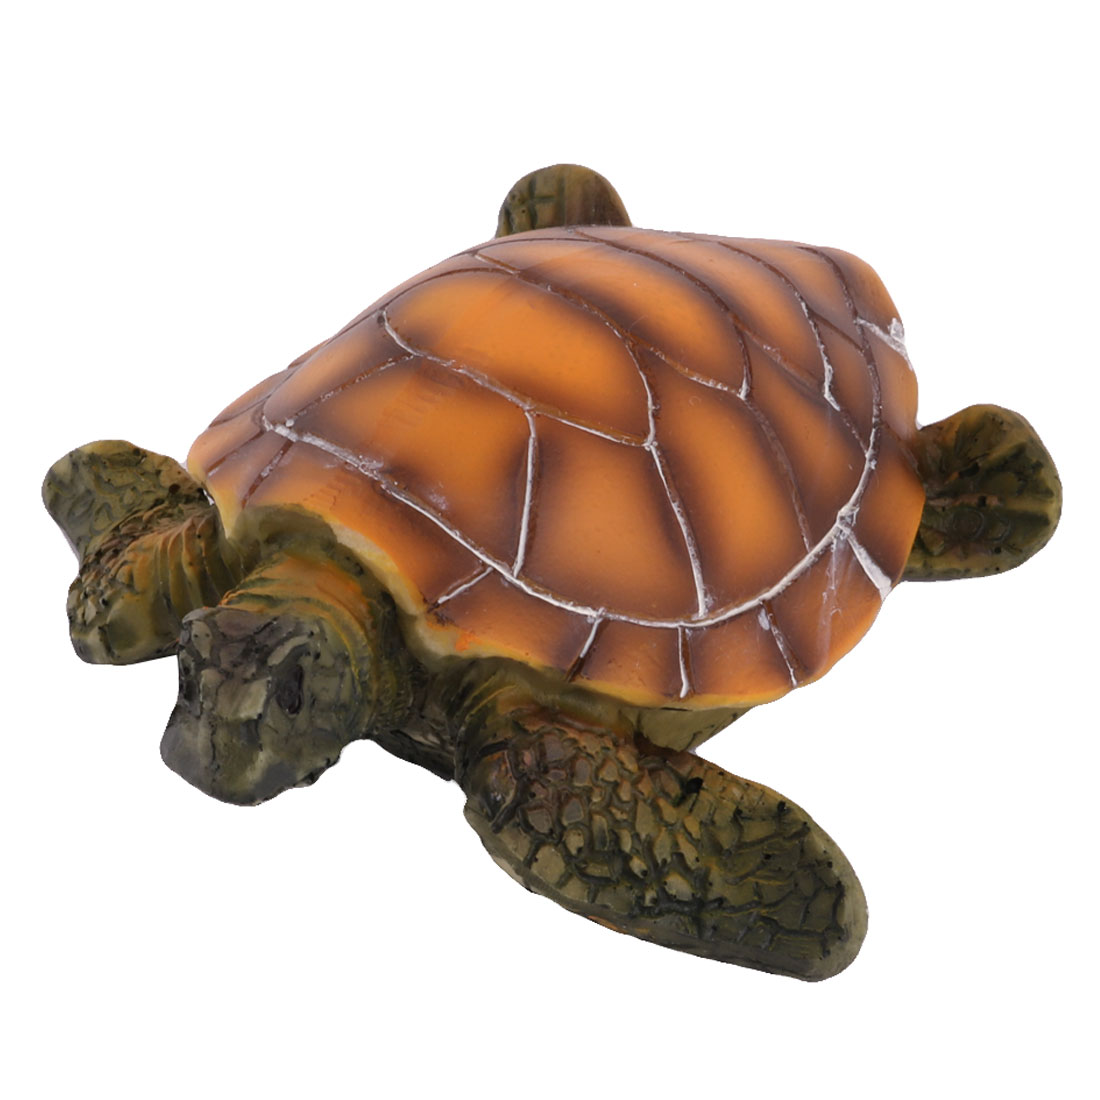 Unique Bargains Aquarium Tank Resin Underwater Artificial Tortoise Landscape Decoration Ornament